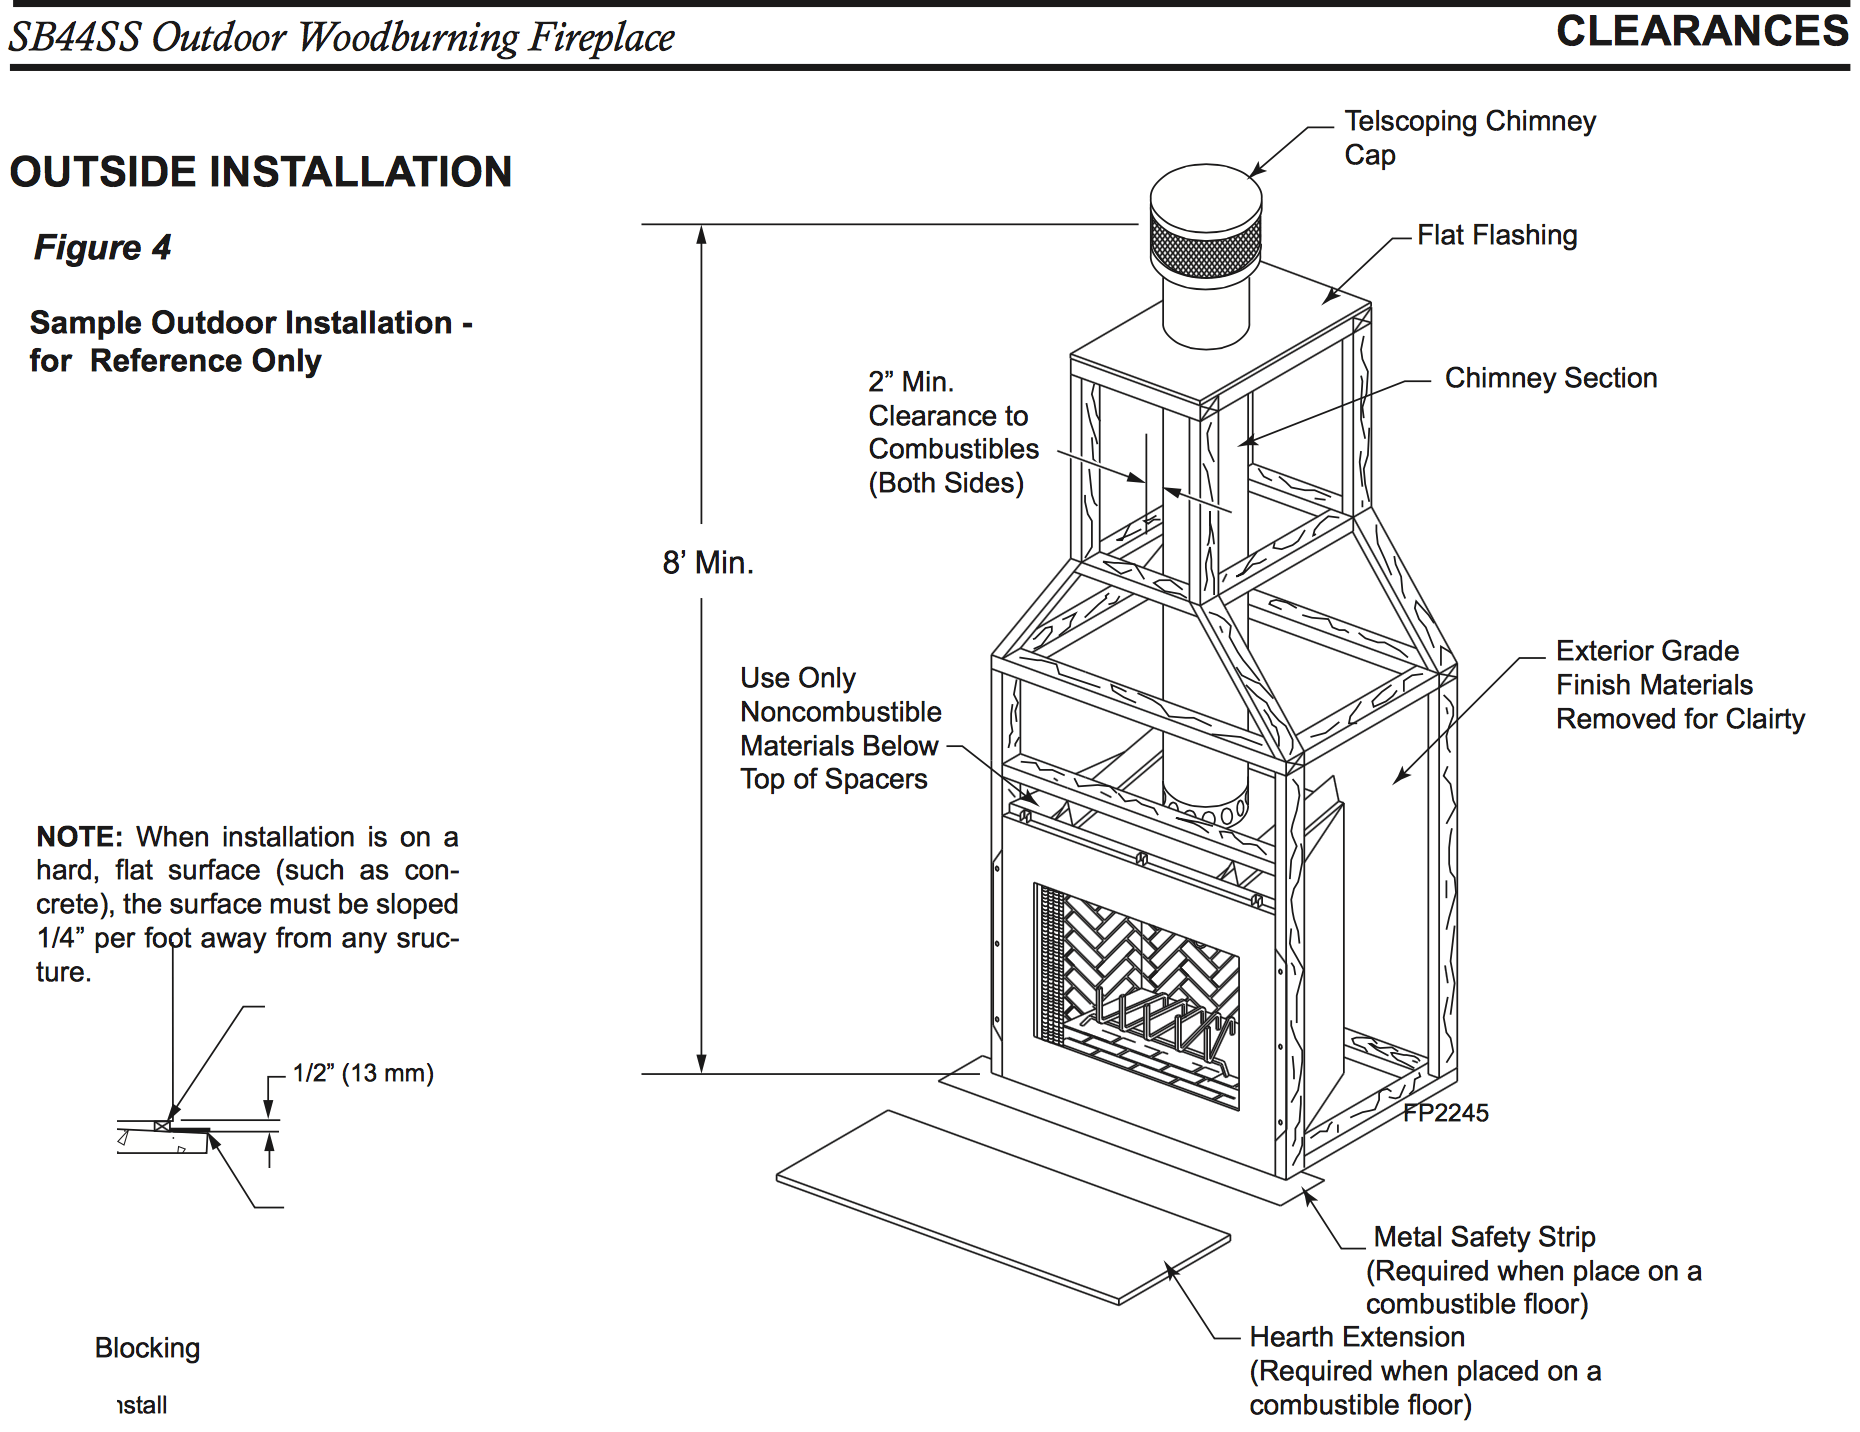 Outdoor Wood Burning Fireplace Dimensions